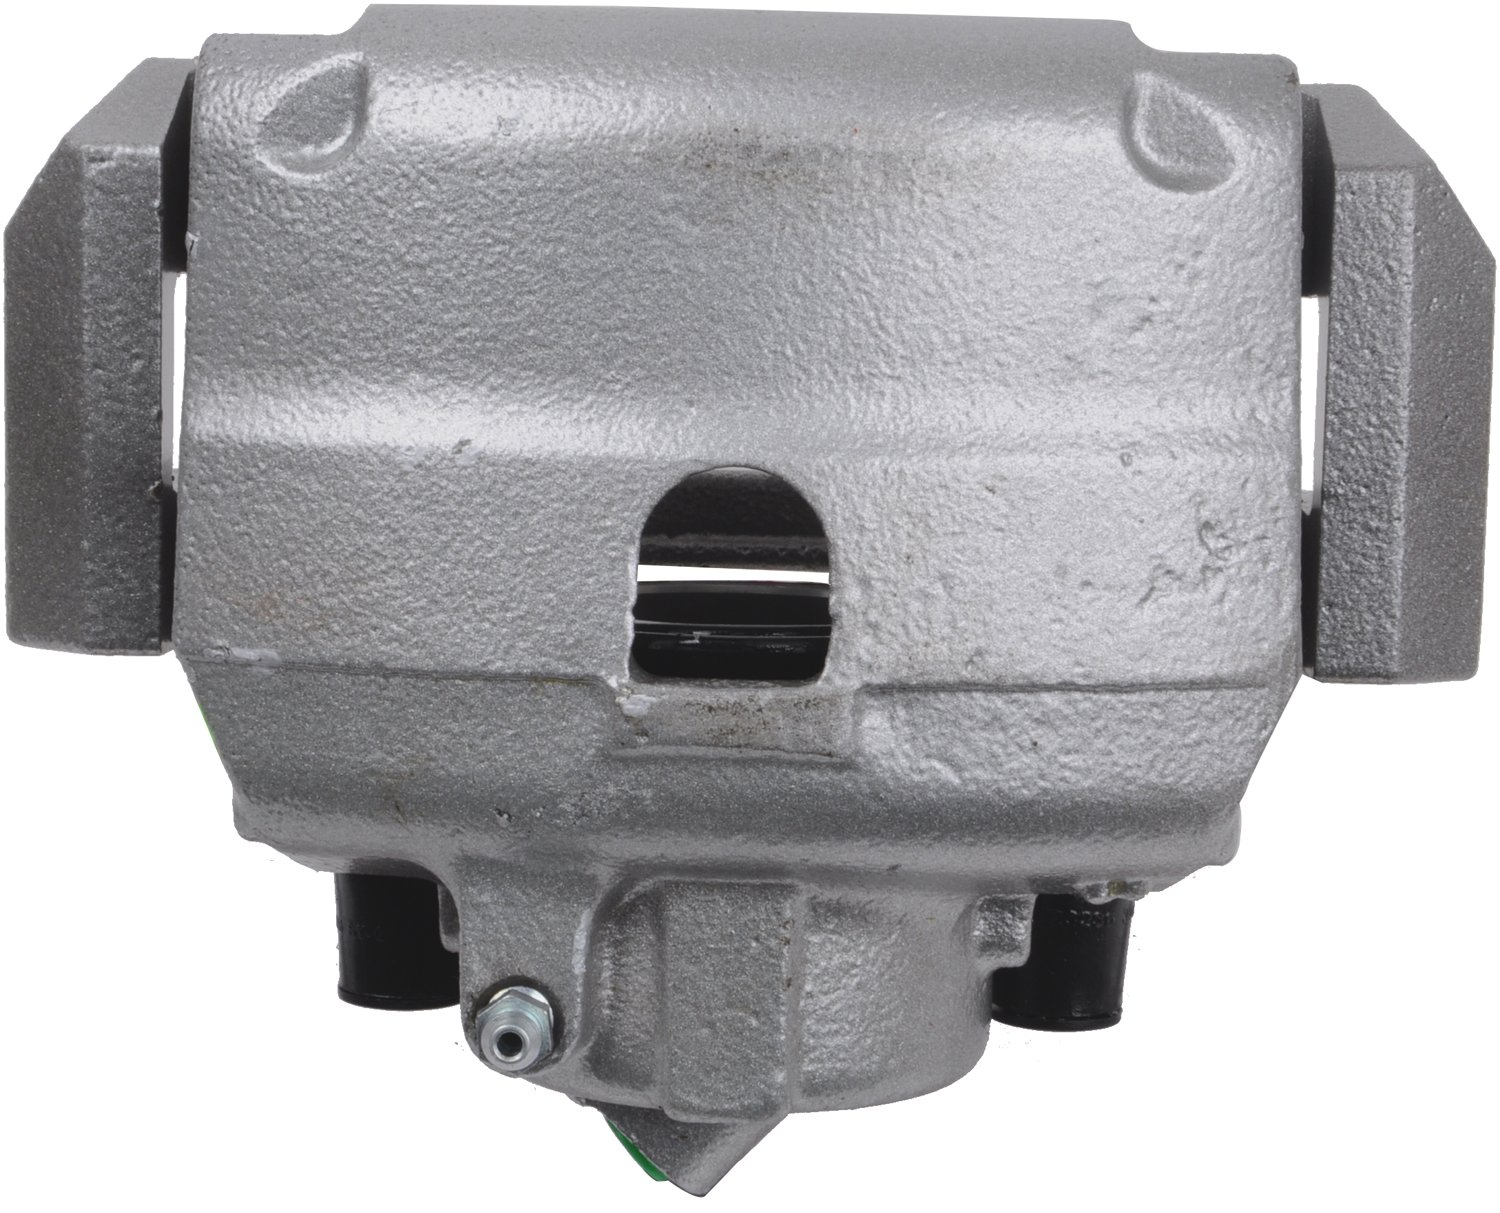 2004 Mazda Tribute Disc Brake Caliper Photos Drum Component Part Diagram Car Parts A1 18 P4778